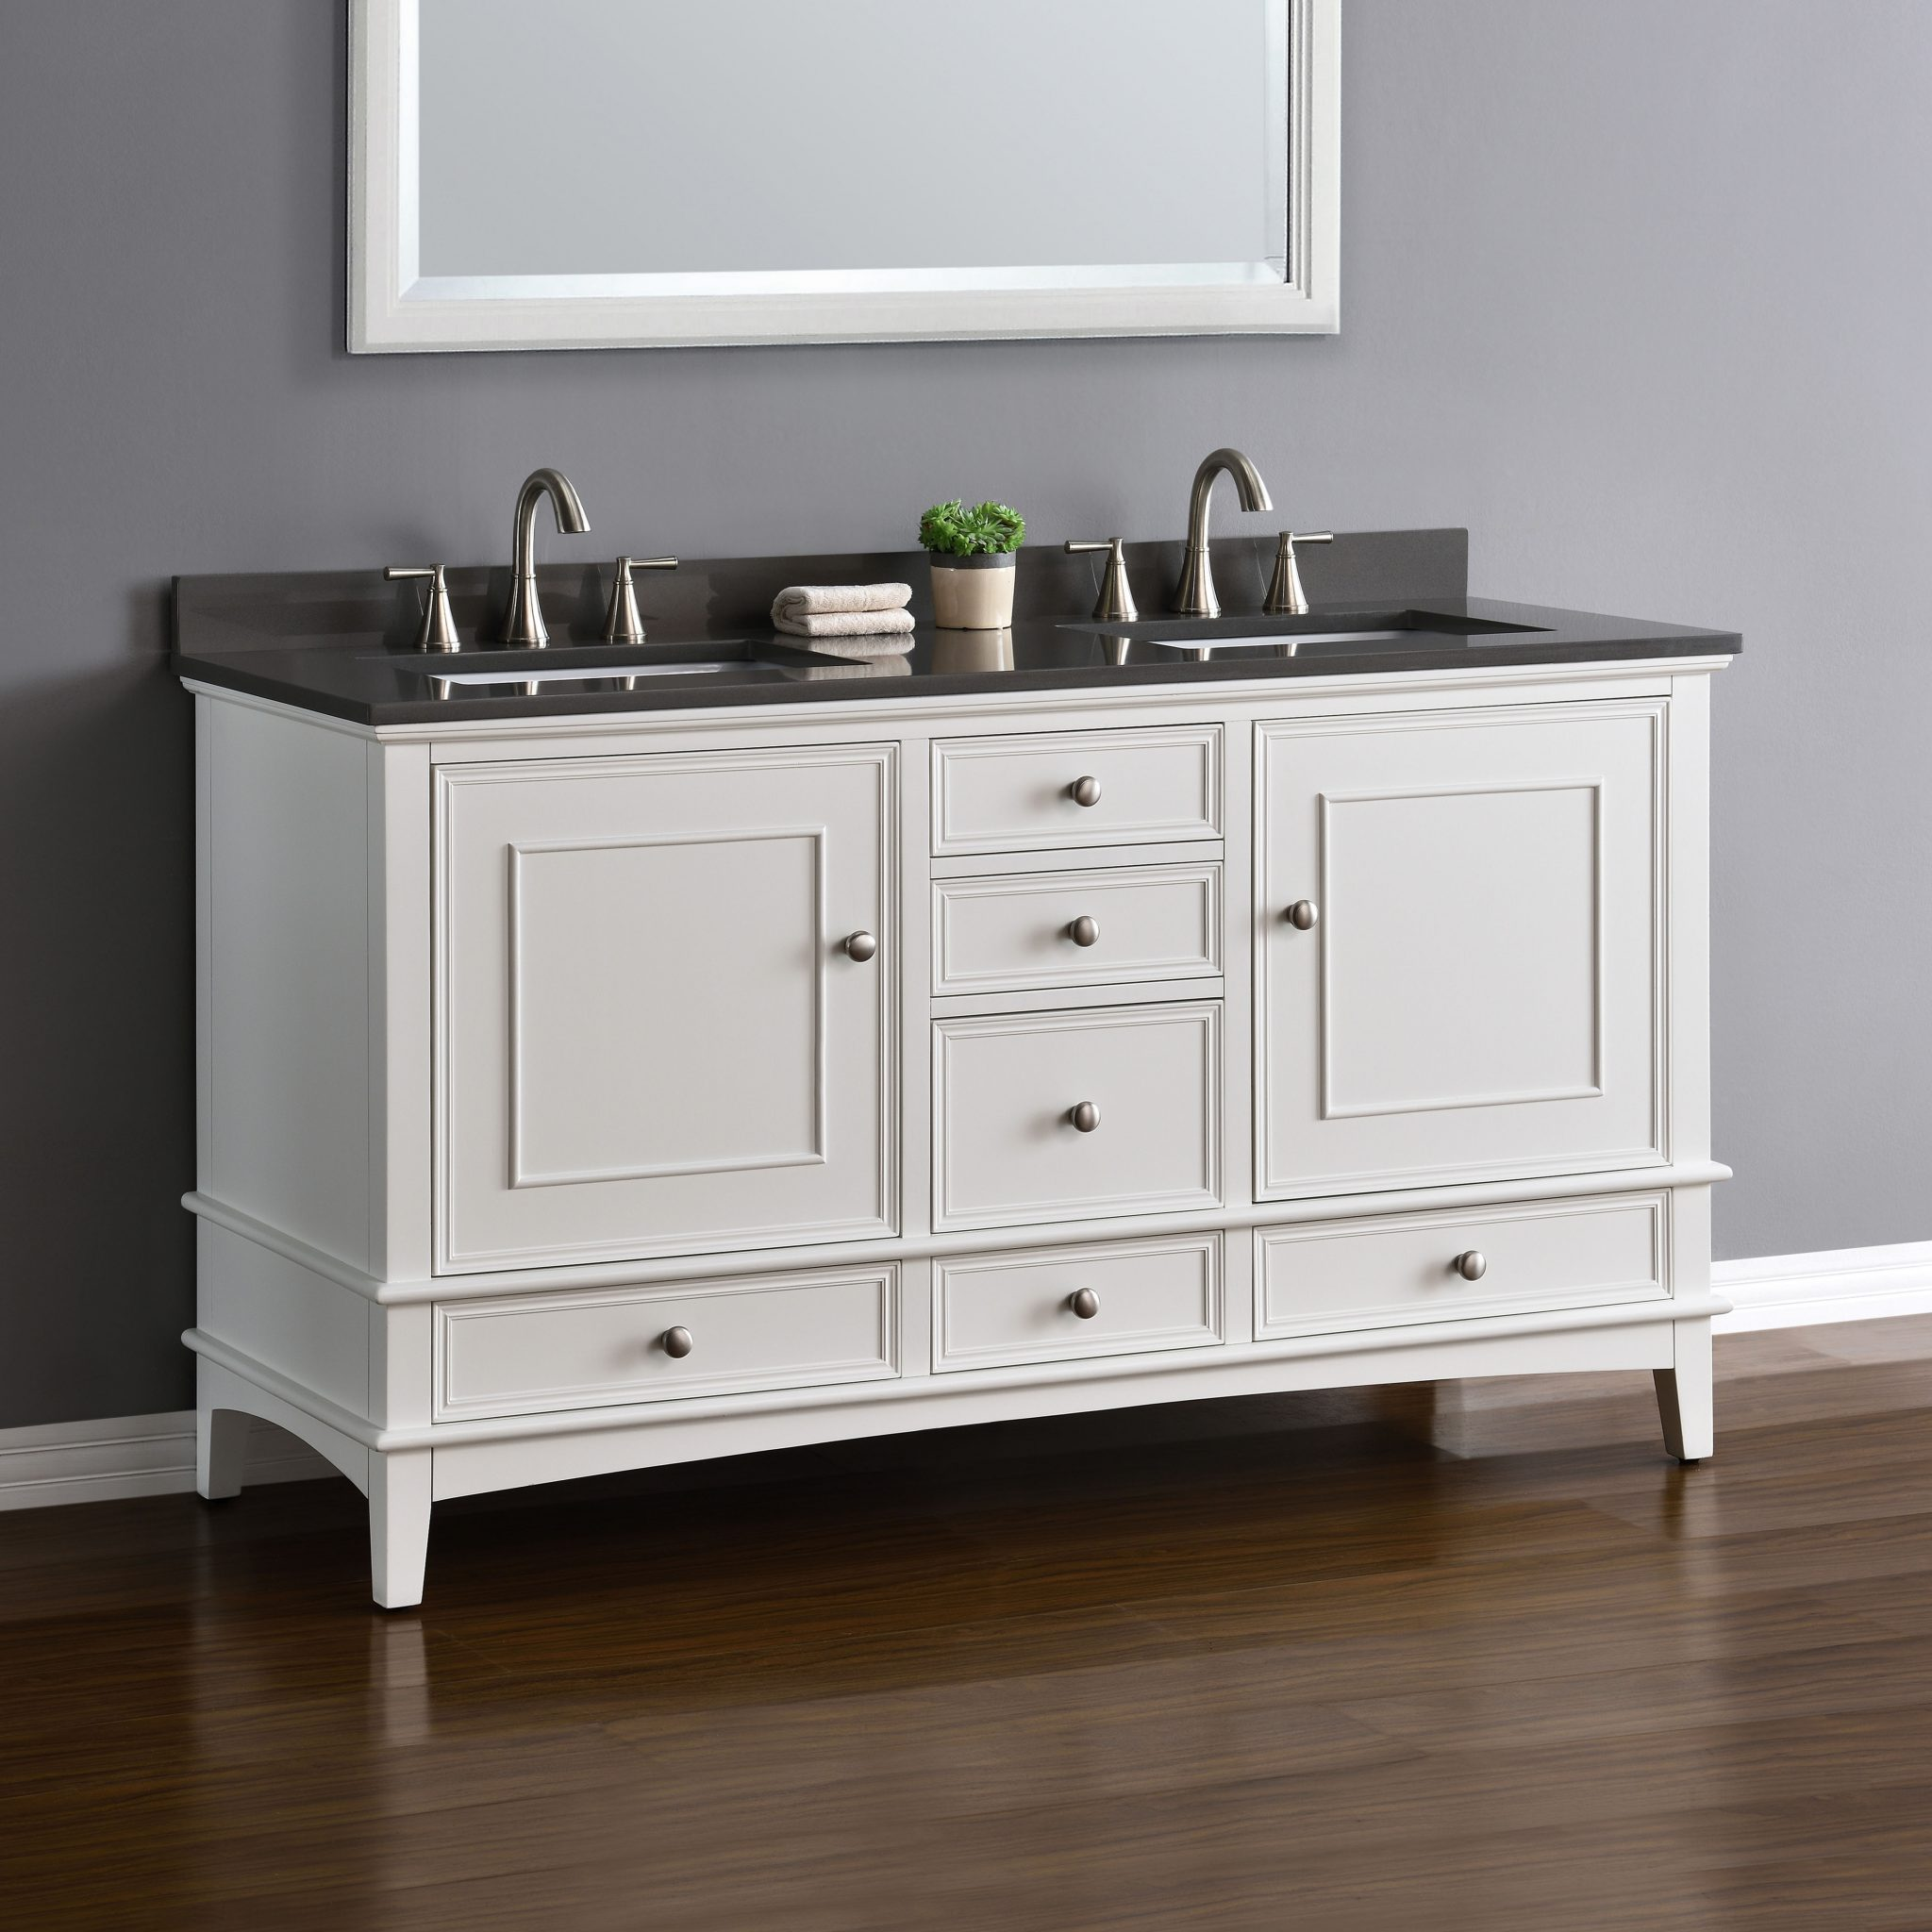 index wt corporation white vanities b in avanity windsor vanity